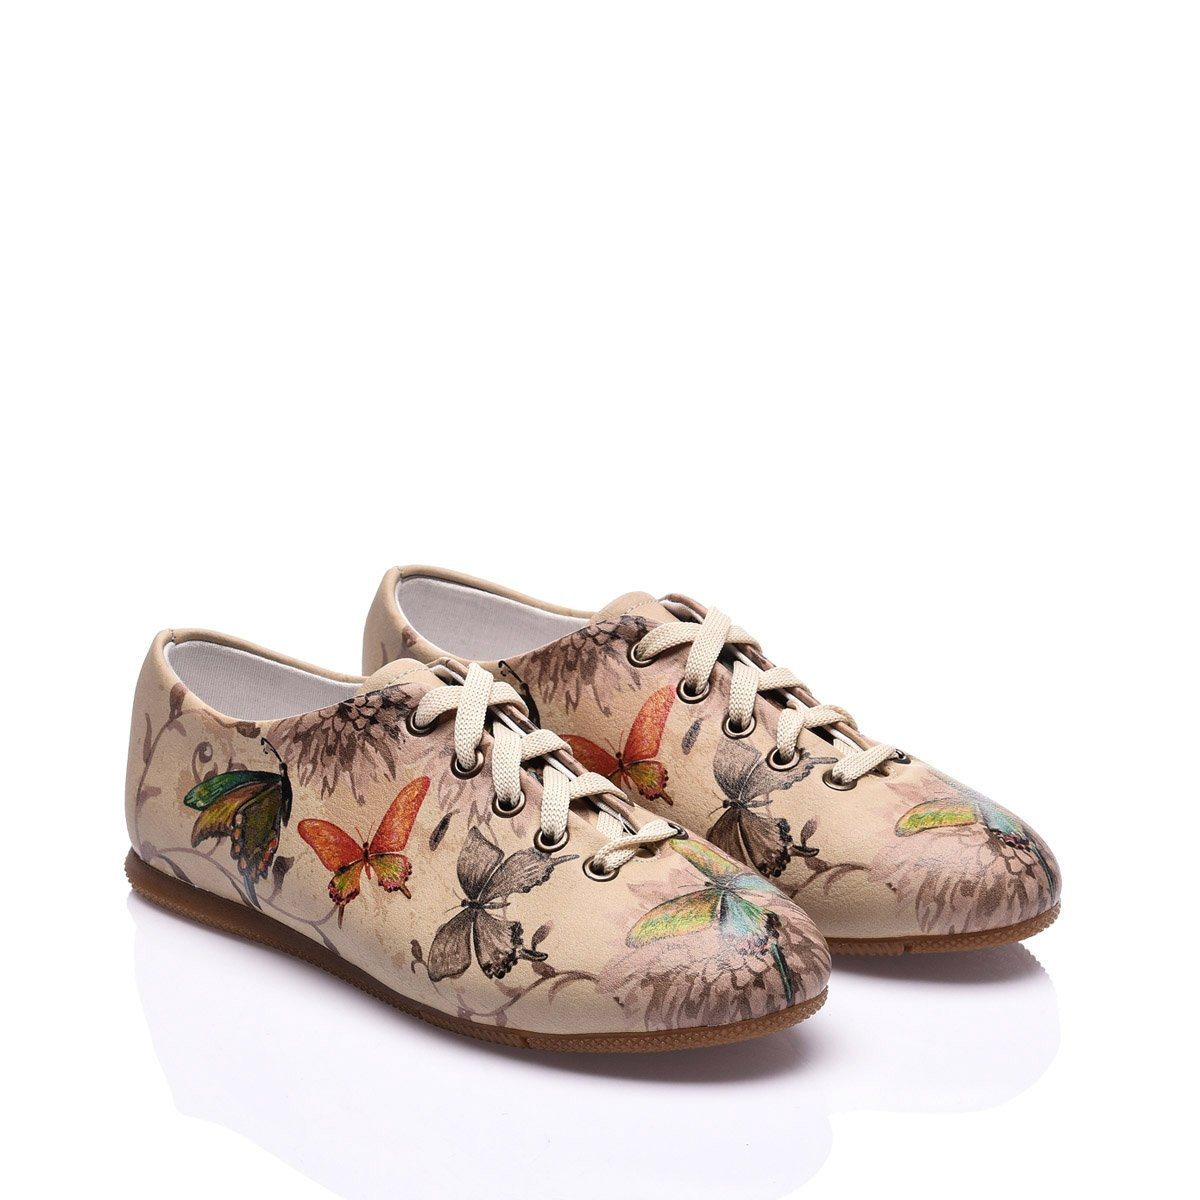 Streetfly Oxford Shoes for Women (7.5 B(M) US / 38 M (EU), Printed - Colourful)